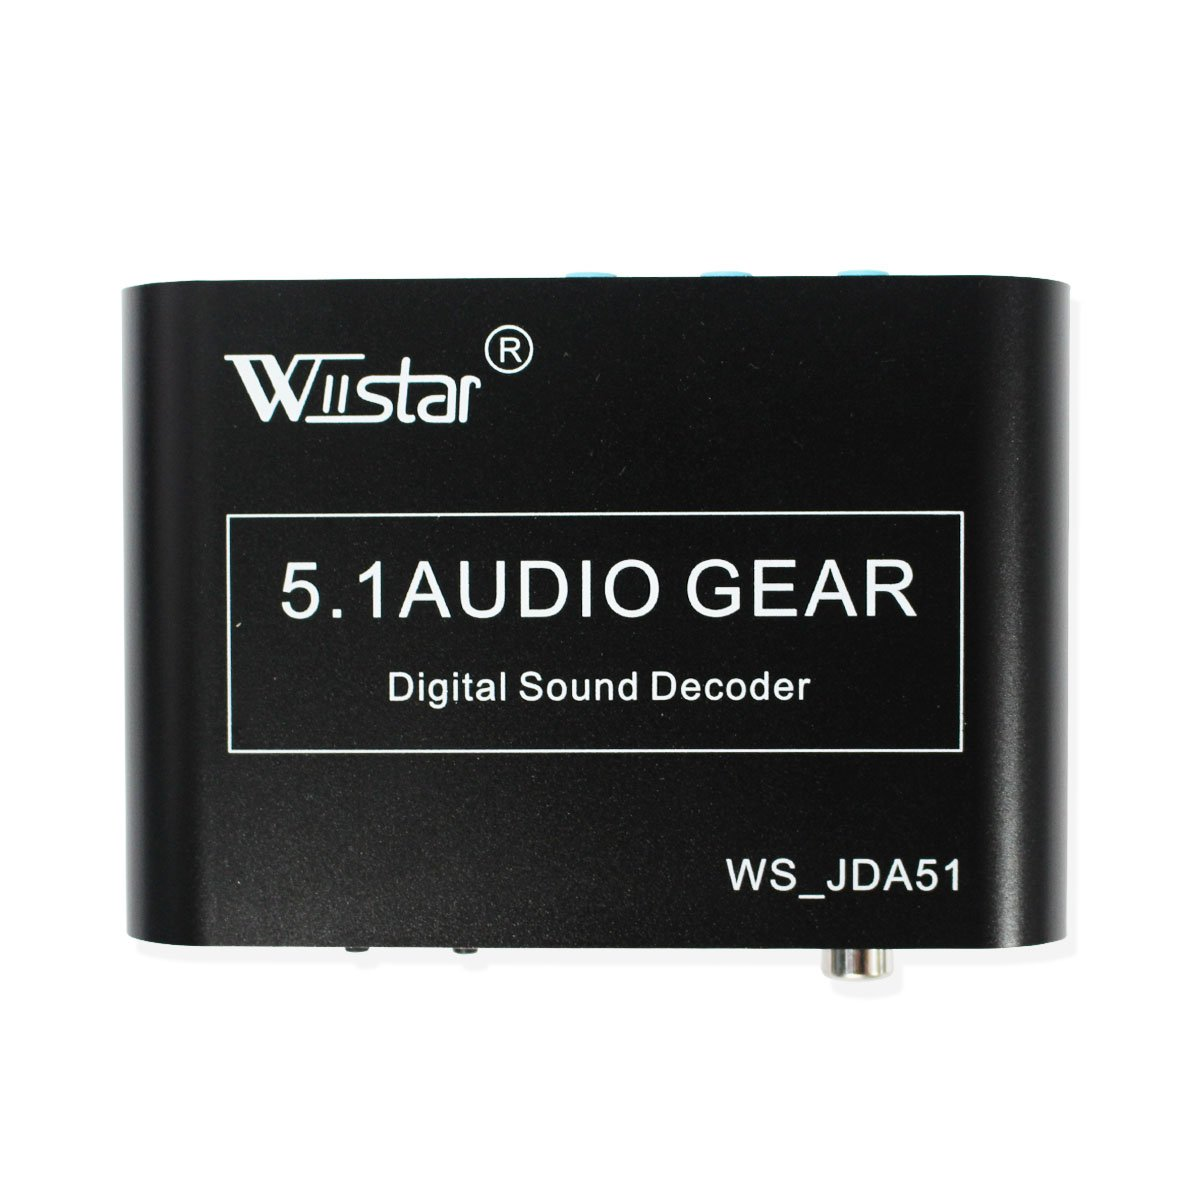 Wiistar 5.1 AC3/DTS Audio Gear Digital Surround Sound Rush Decoder HD Player with USB Port